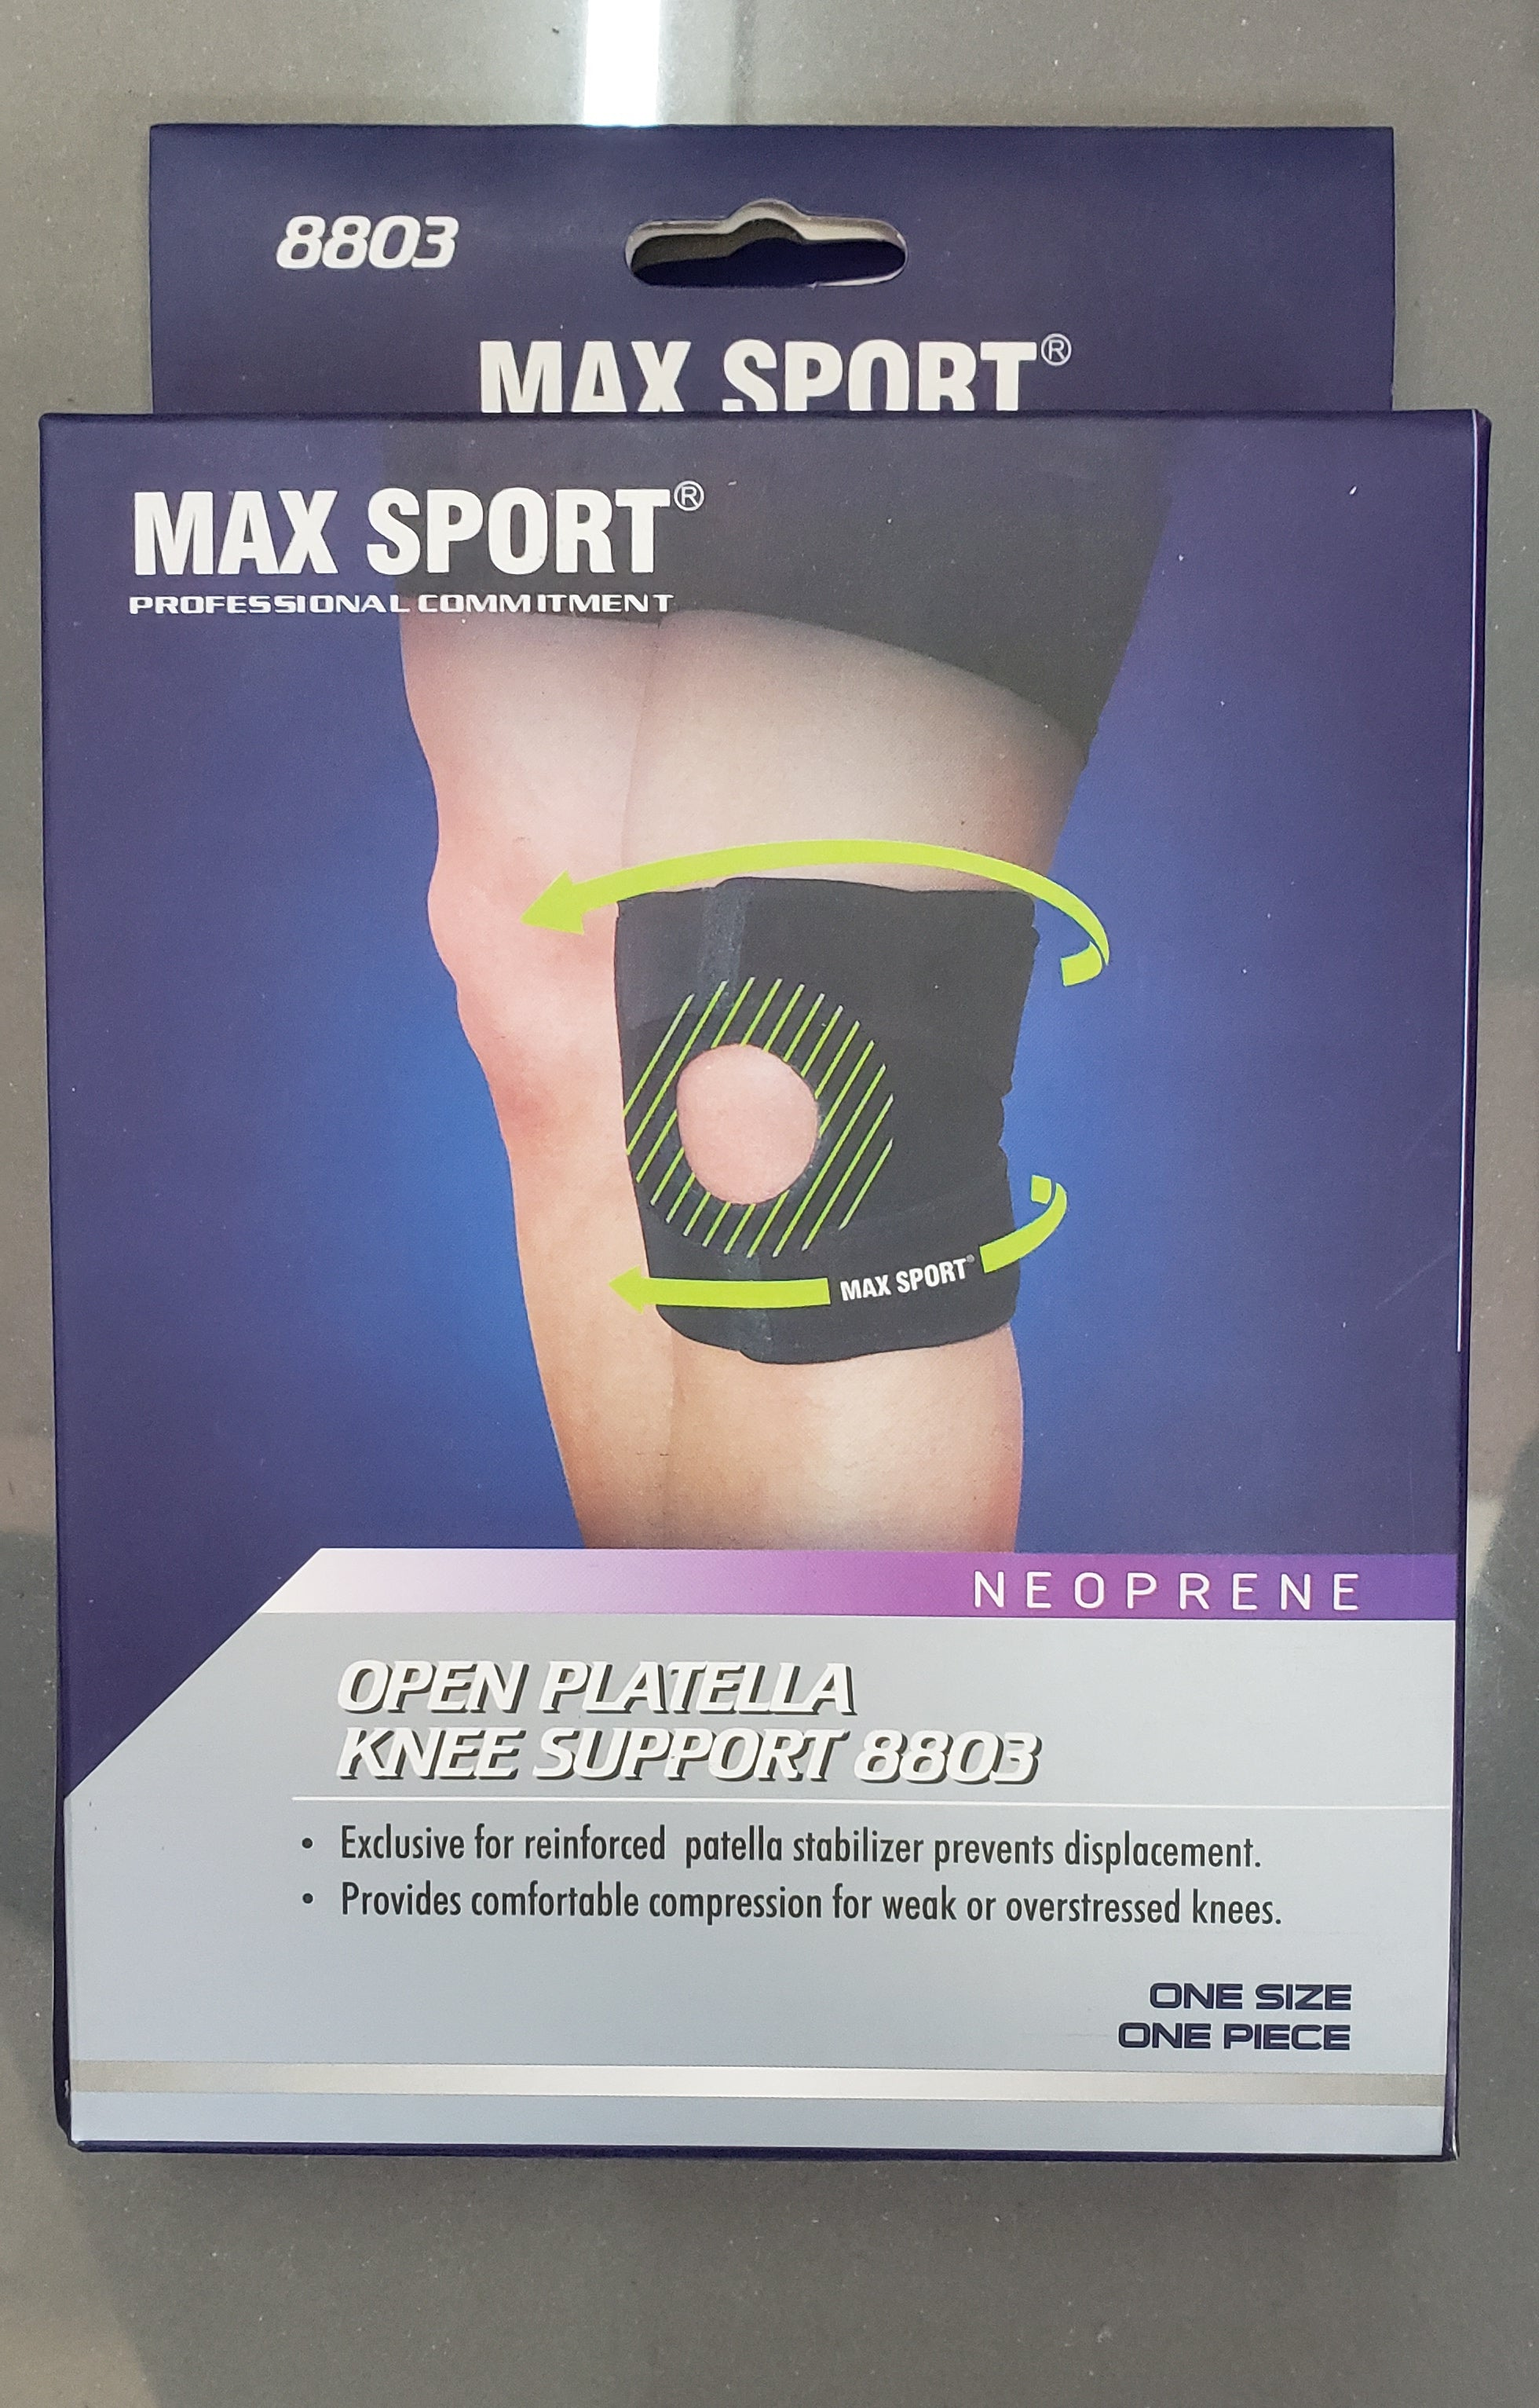 MAX SPORT Open Platella Knee Support (One Size,One Piece) 8803